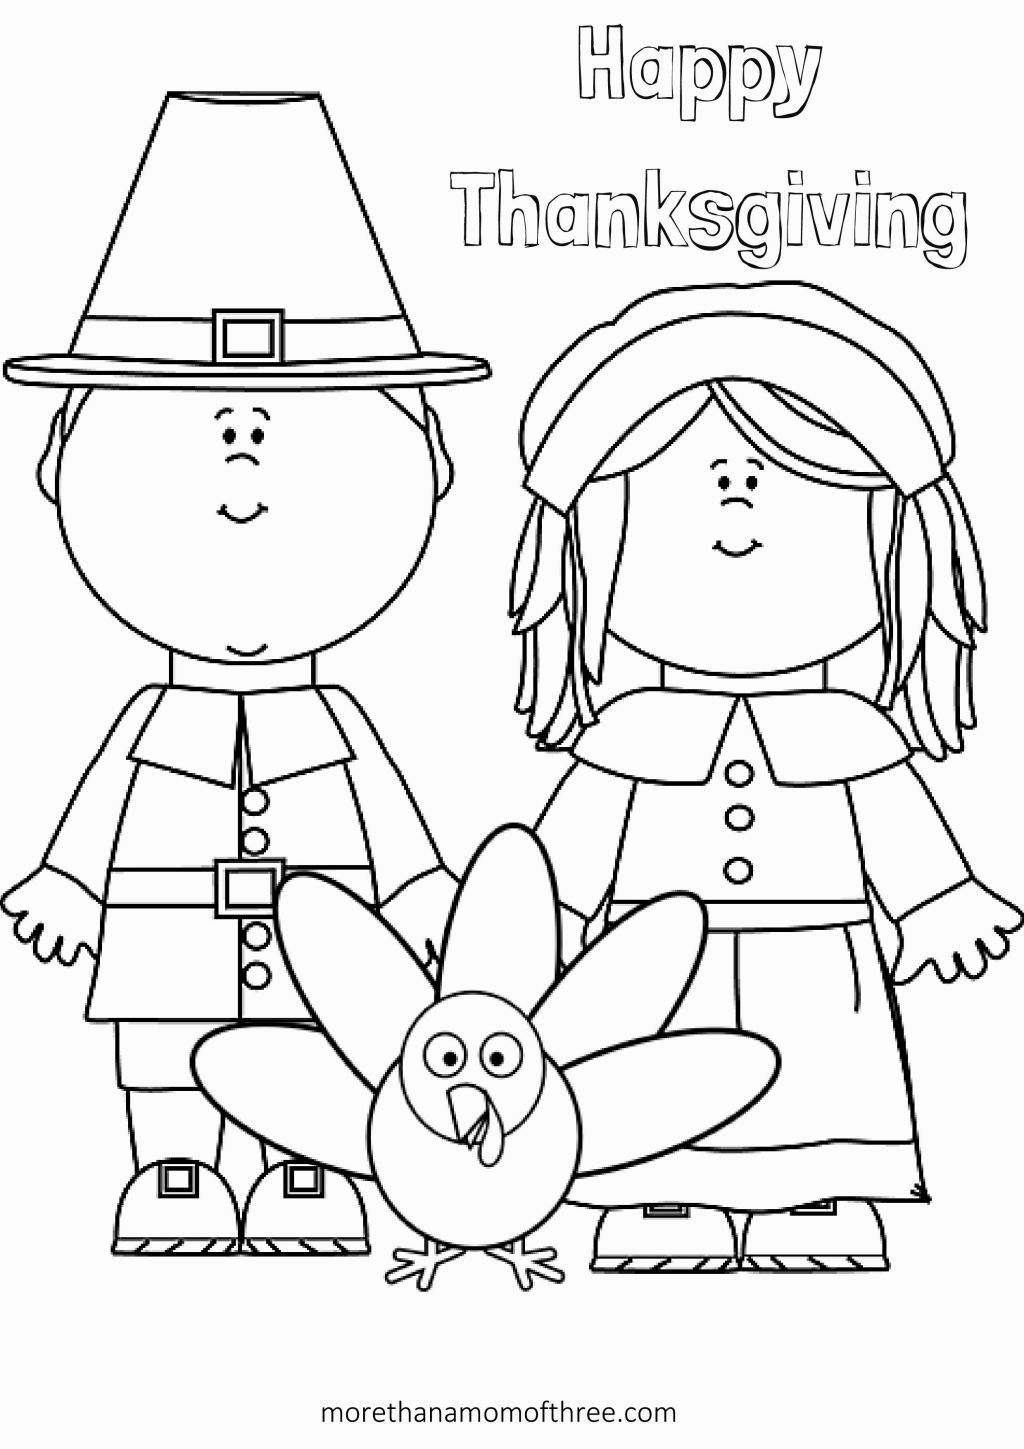 Thanksgiving Preschool Coloring Pages